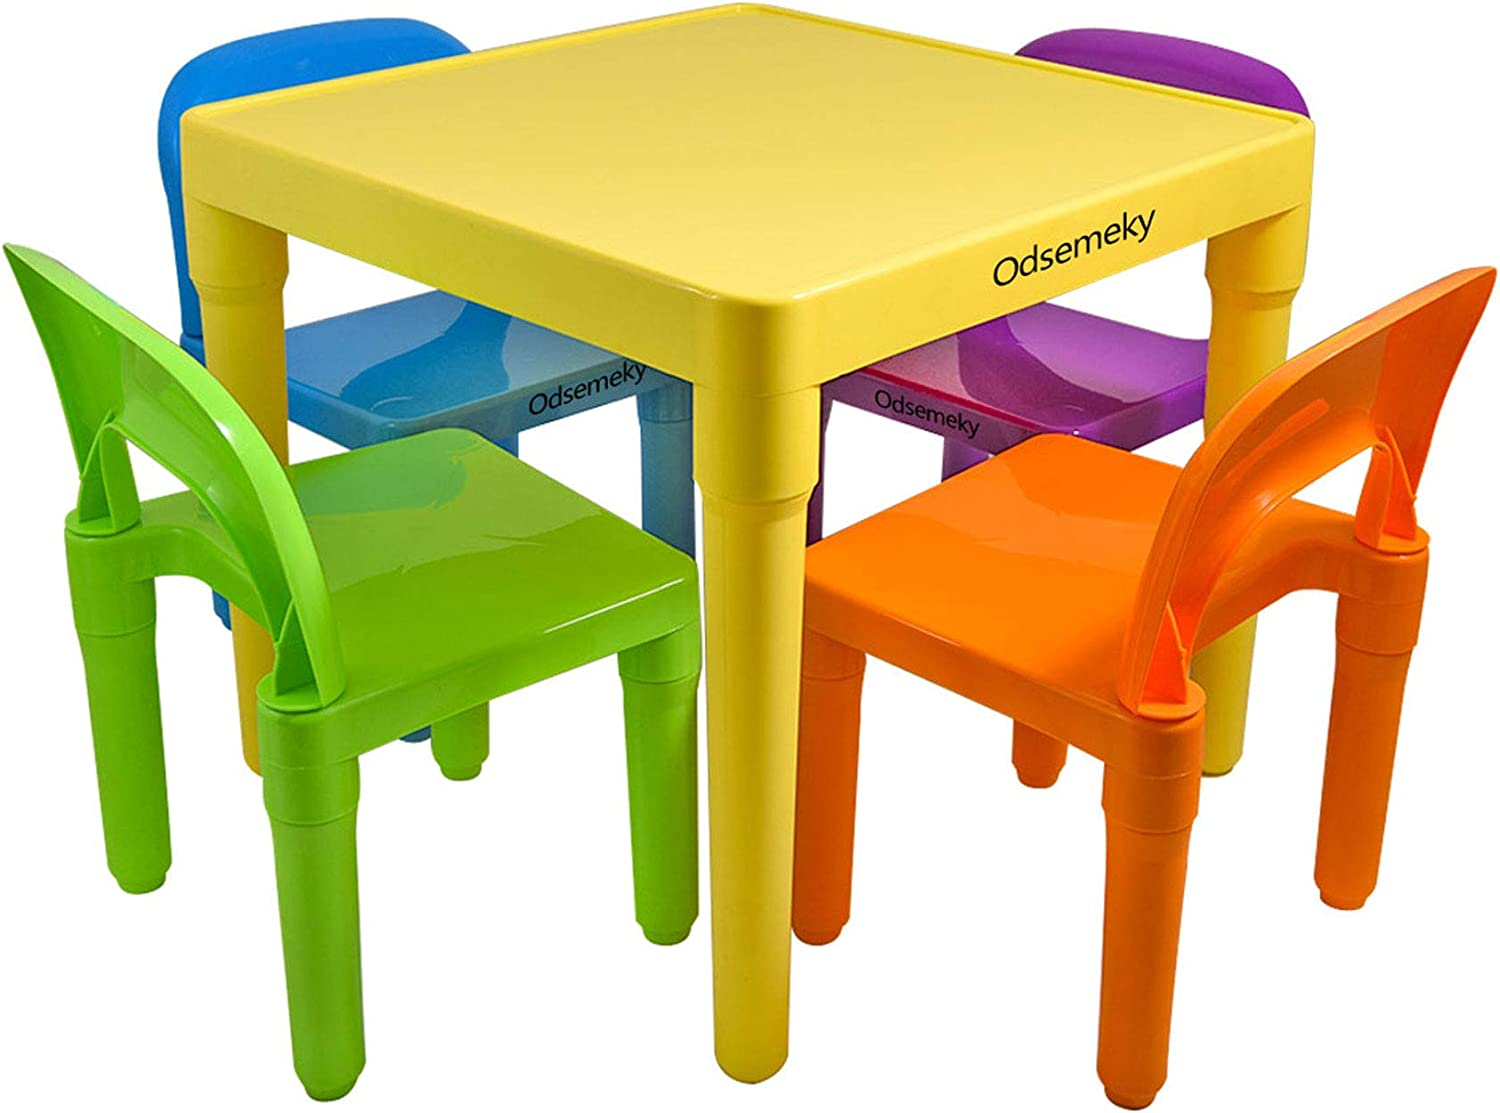 Odsemeky Kids Table and 4 Chairs Set, Colorful Study Play Arts Crafts Dining Patio Table for Toddler, Plastic Activity Furniture Set Gift for Baby Boys/Girls 3 Years Old and Up